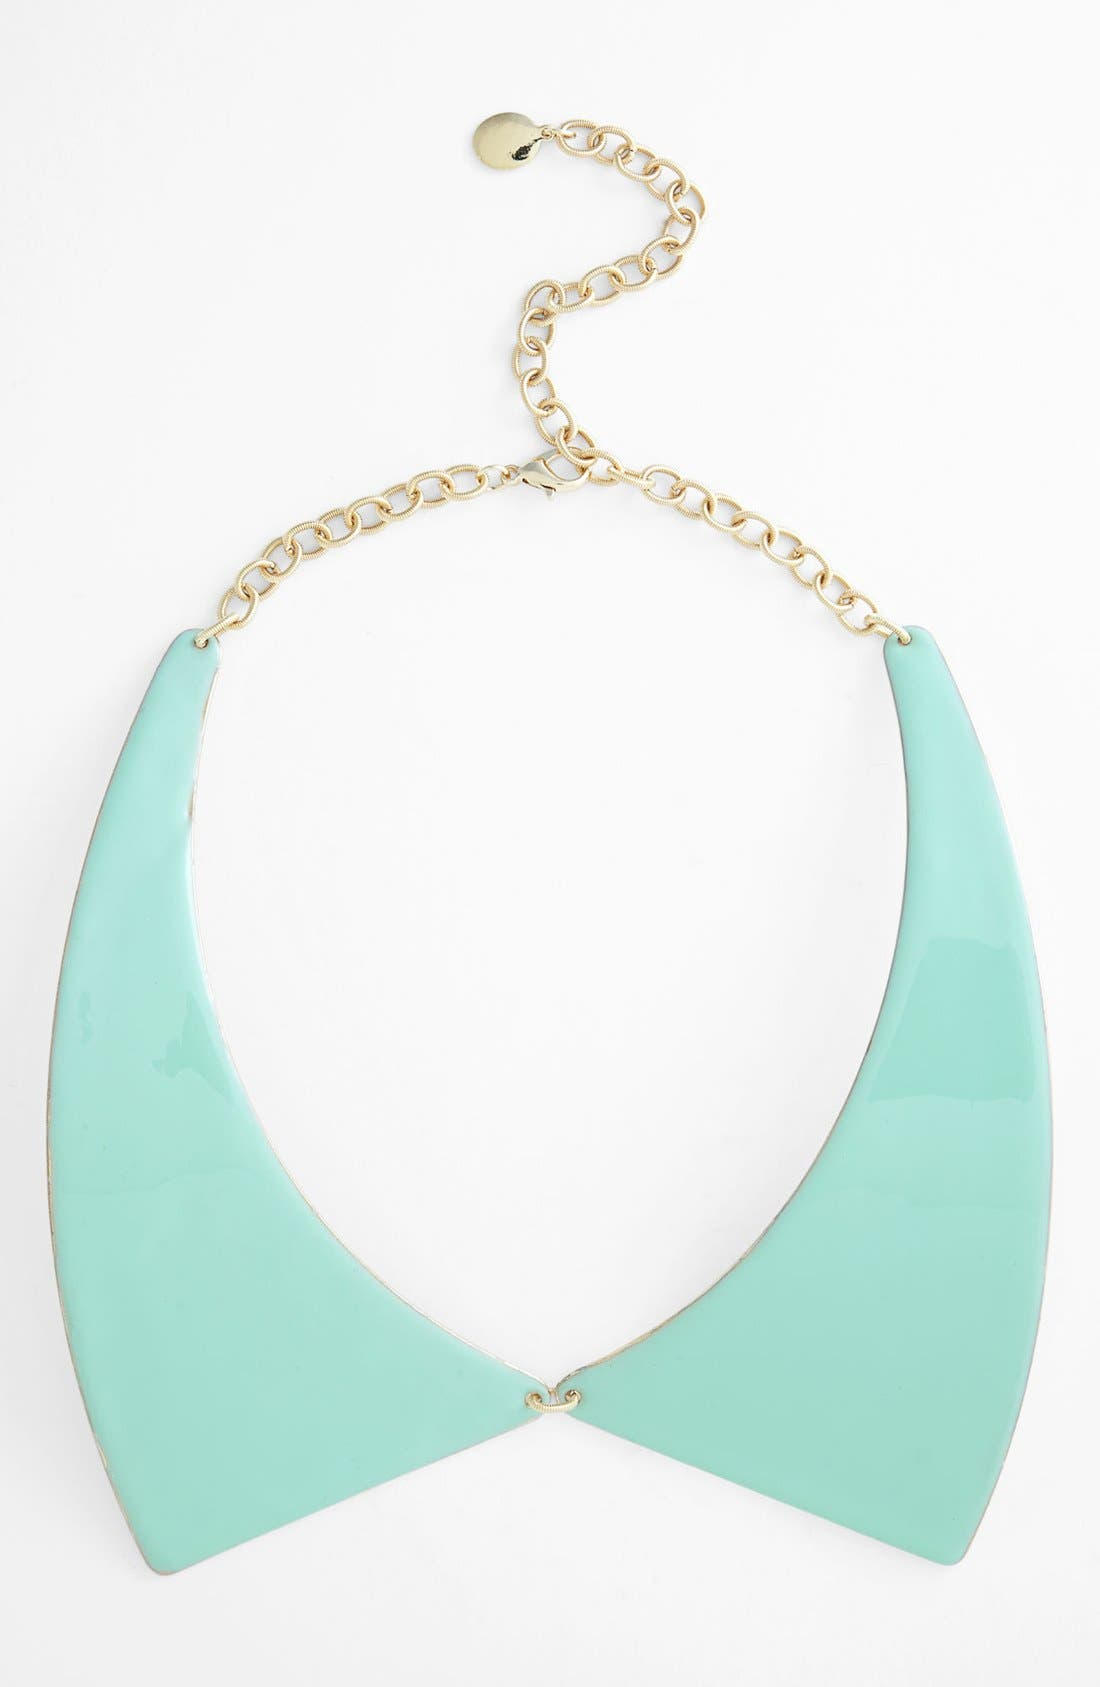 Main Image - Bonnie Jonas Metal Collar Necklace